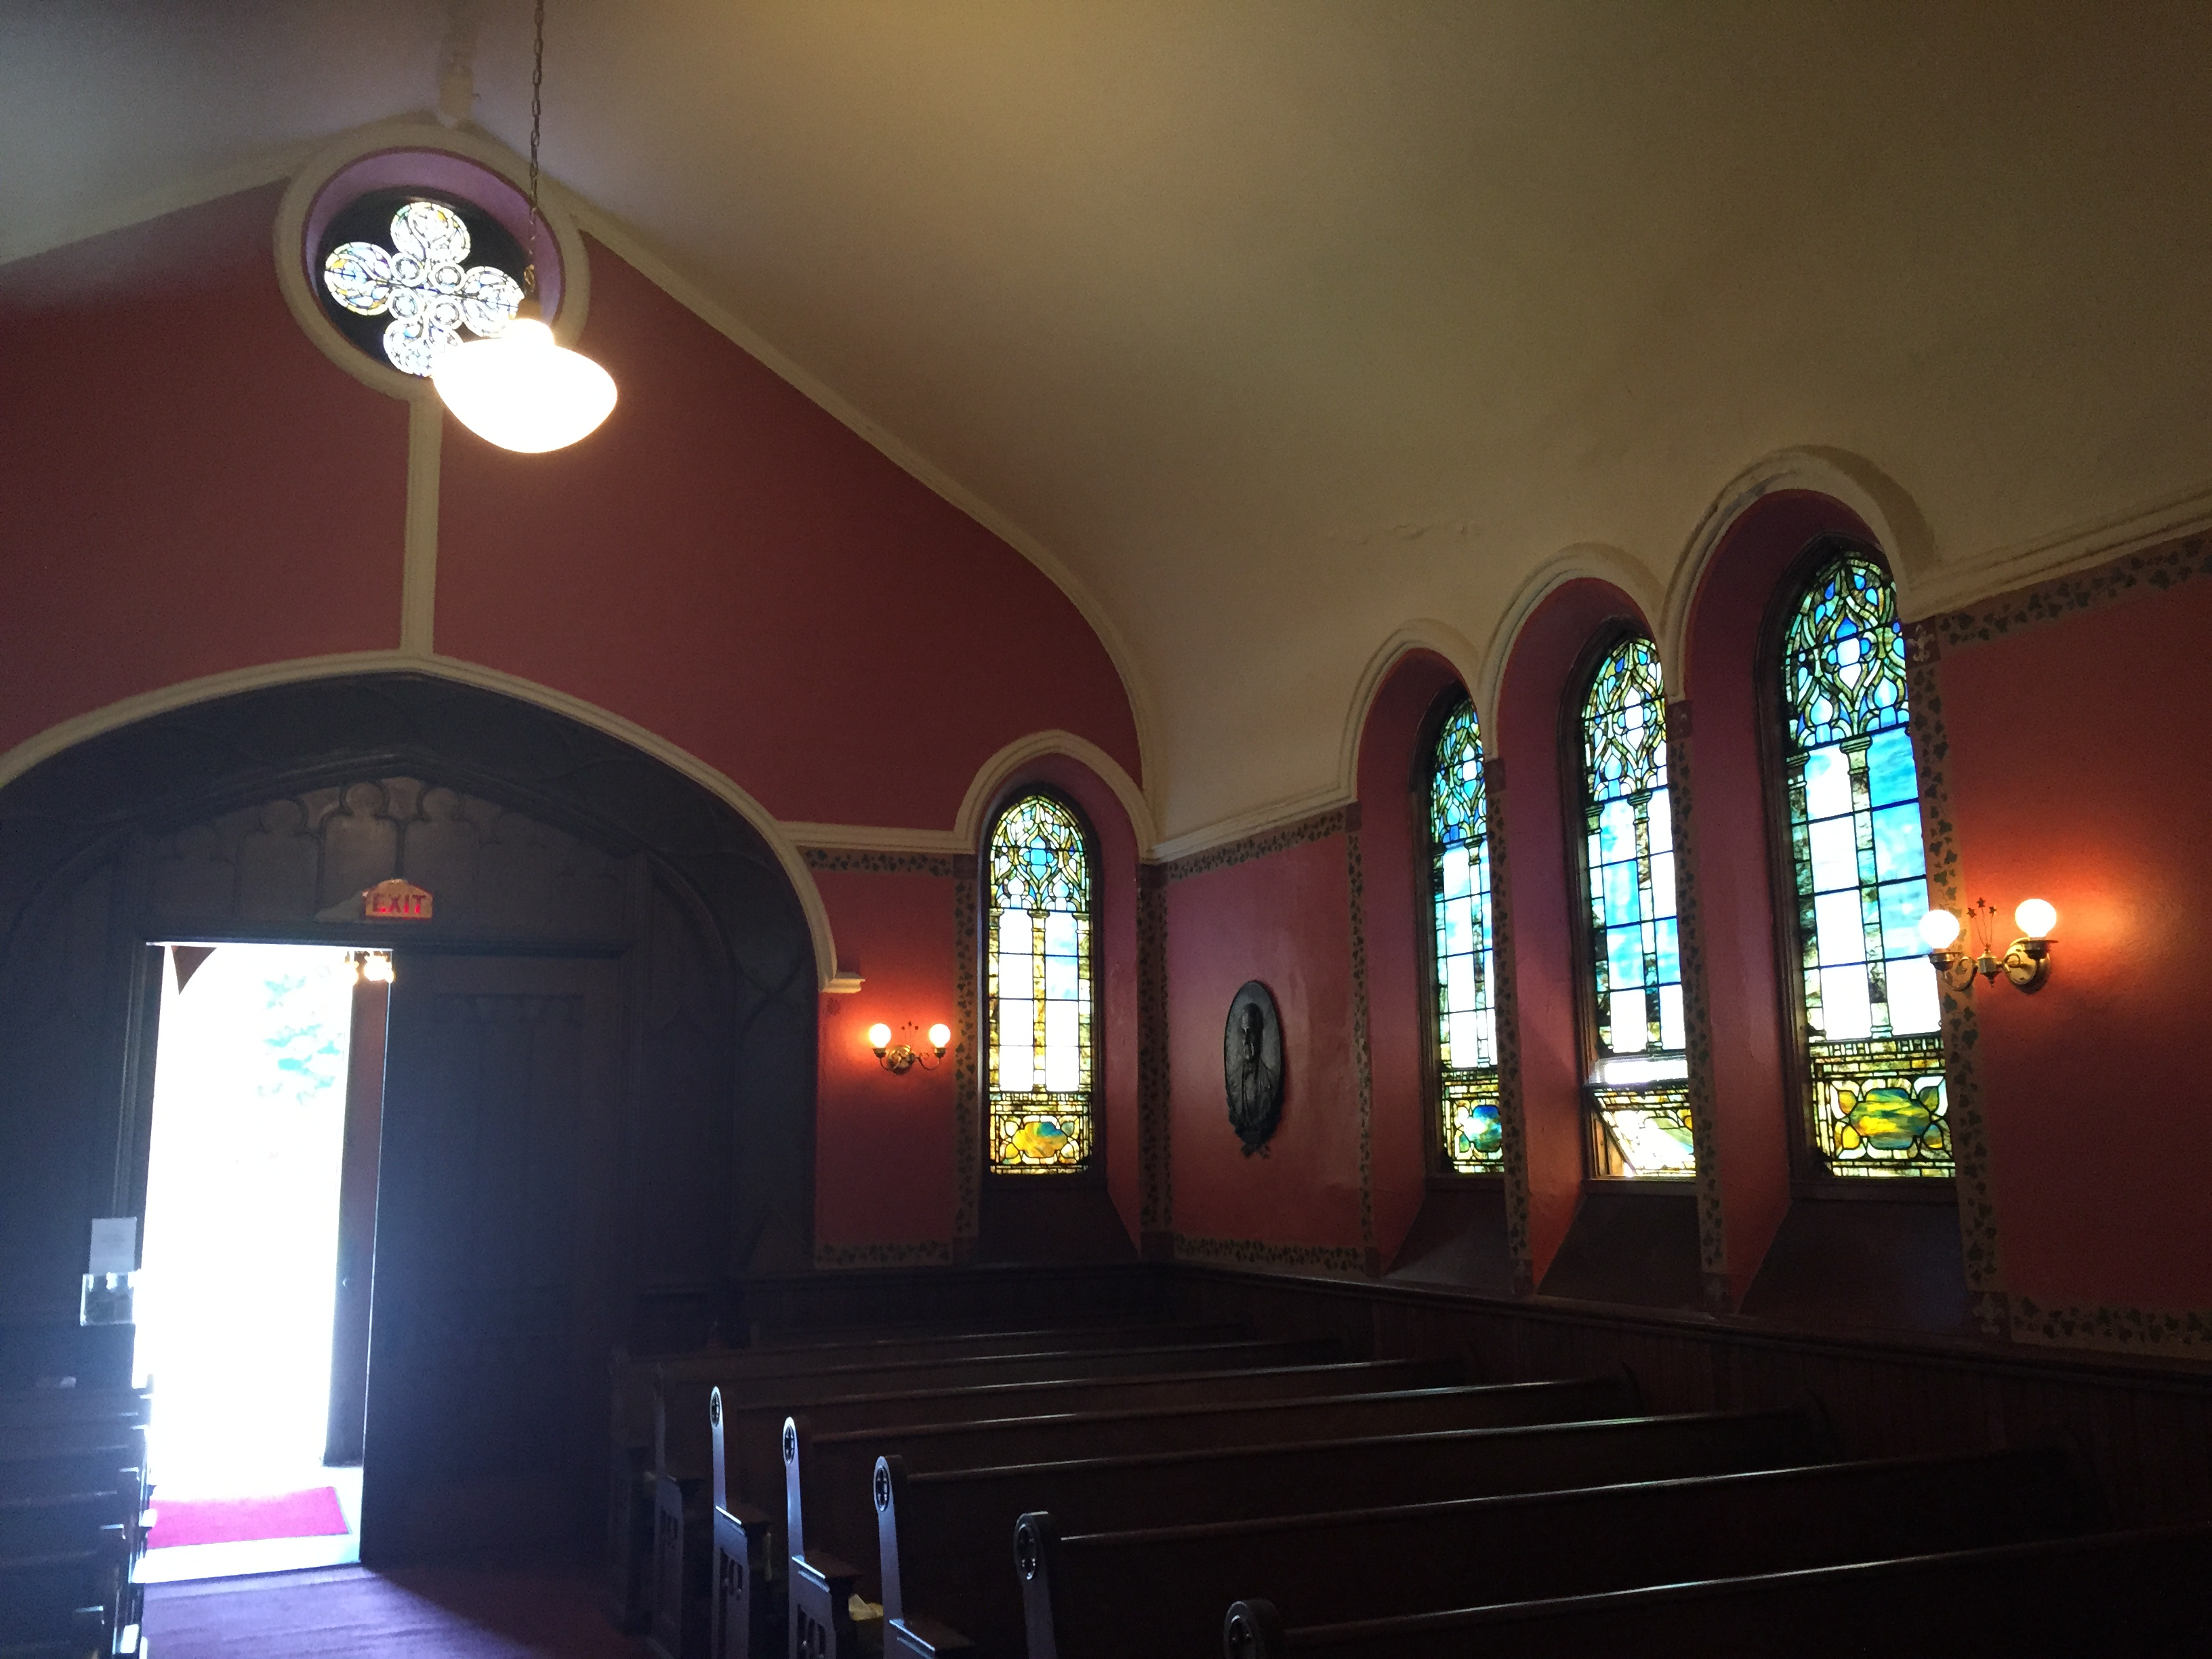 Windows and Pews in the Pullman Memorial Universalist Church in Albion